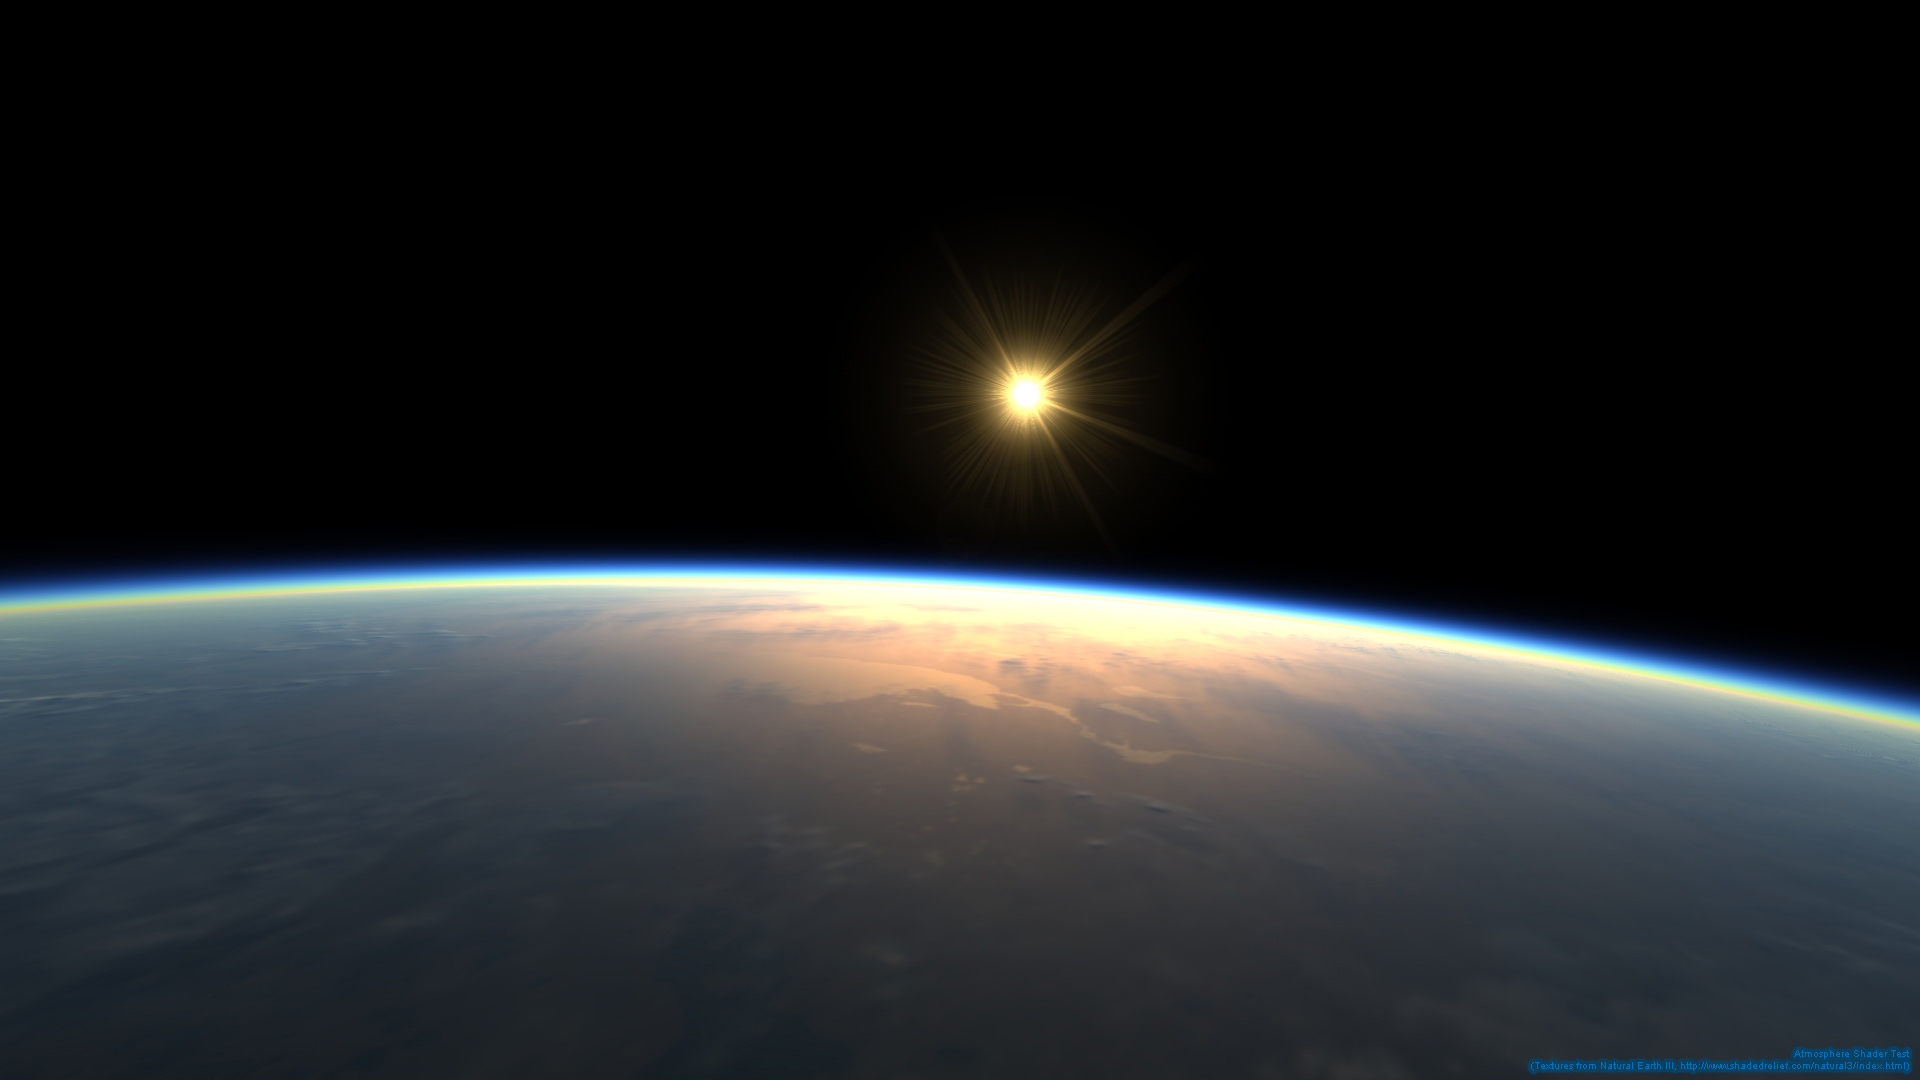 atmosphere ascent test.avi (1MB DivX 6)